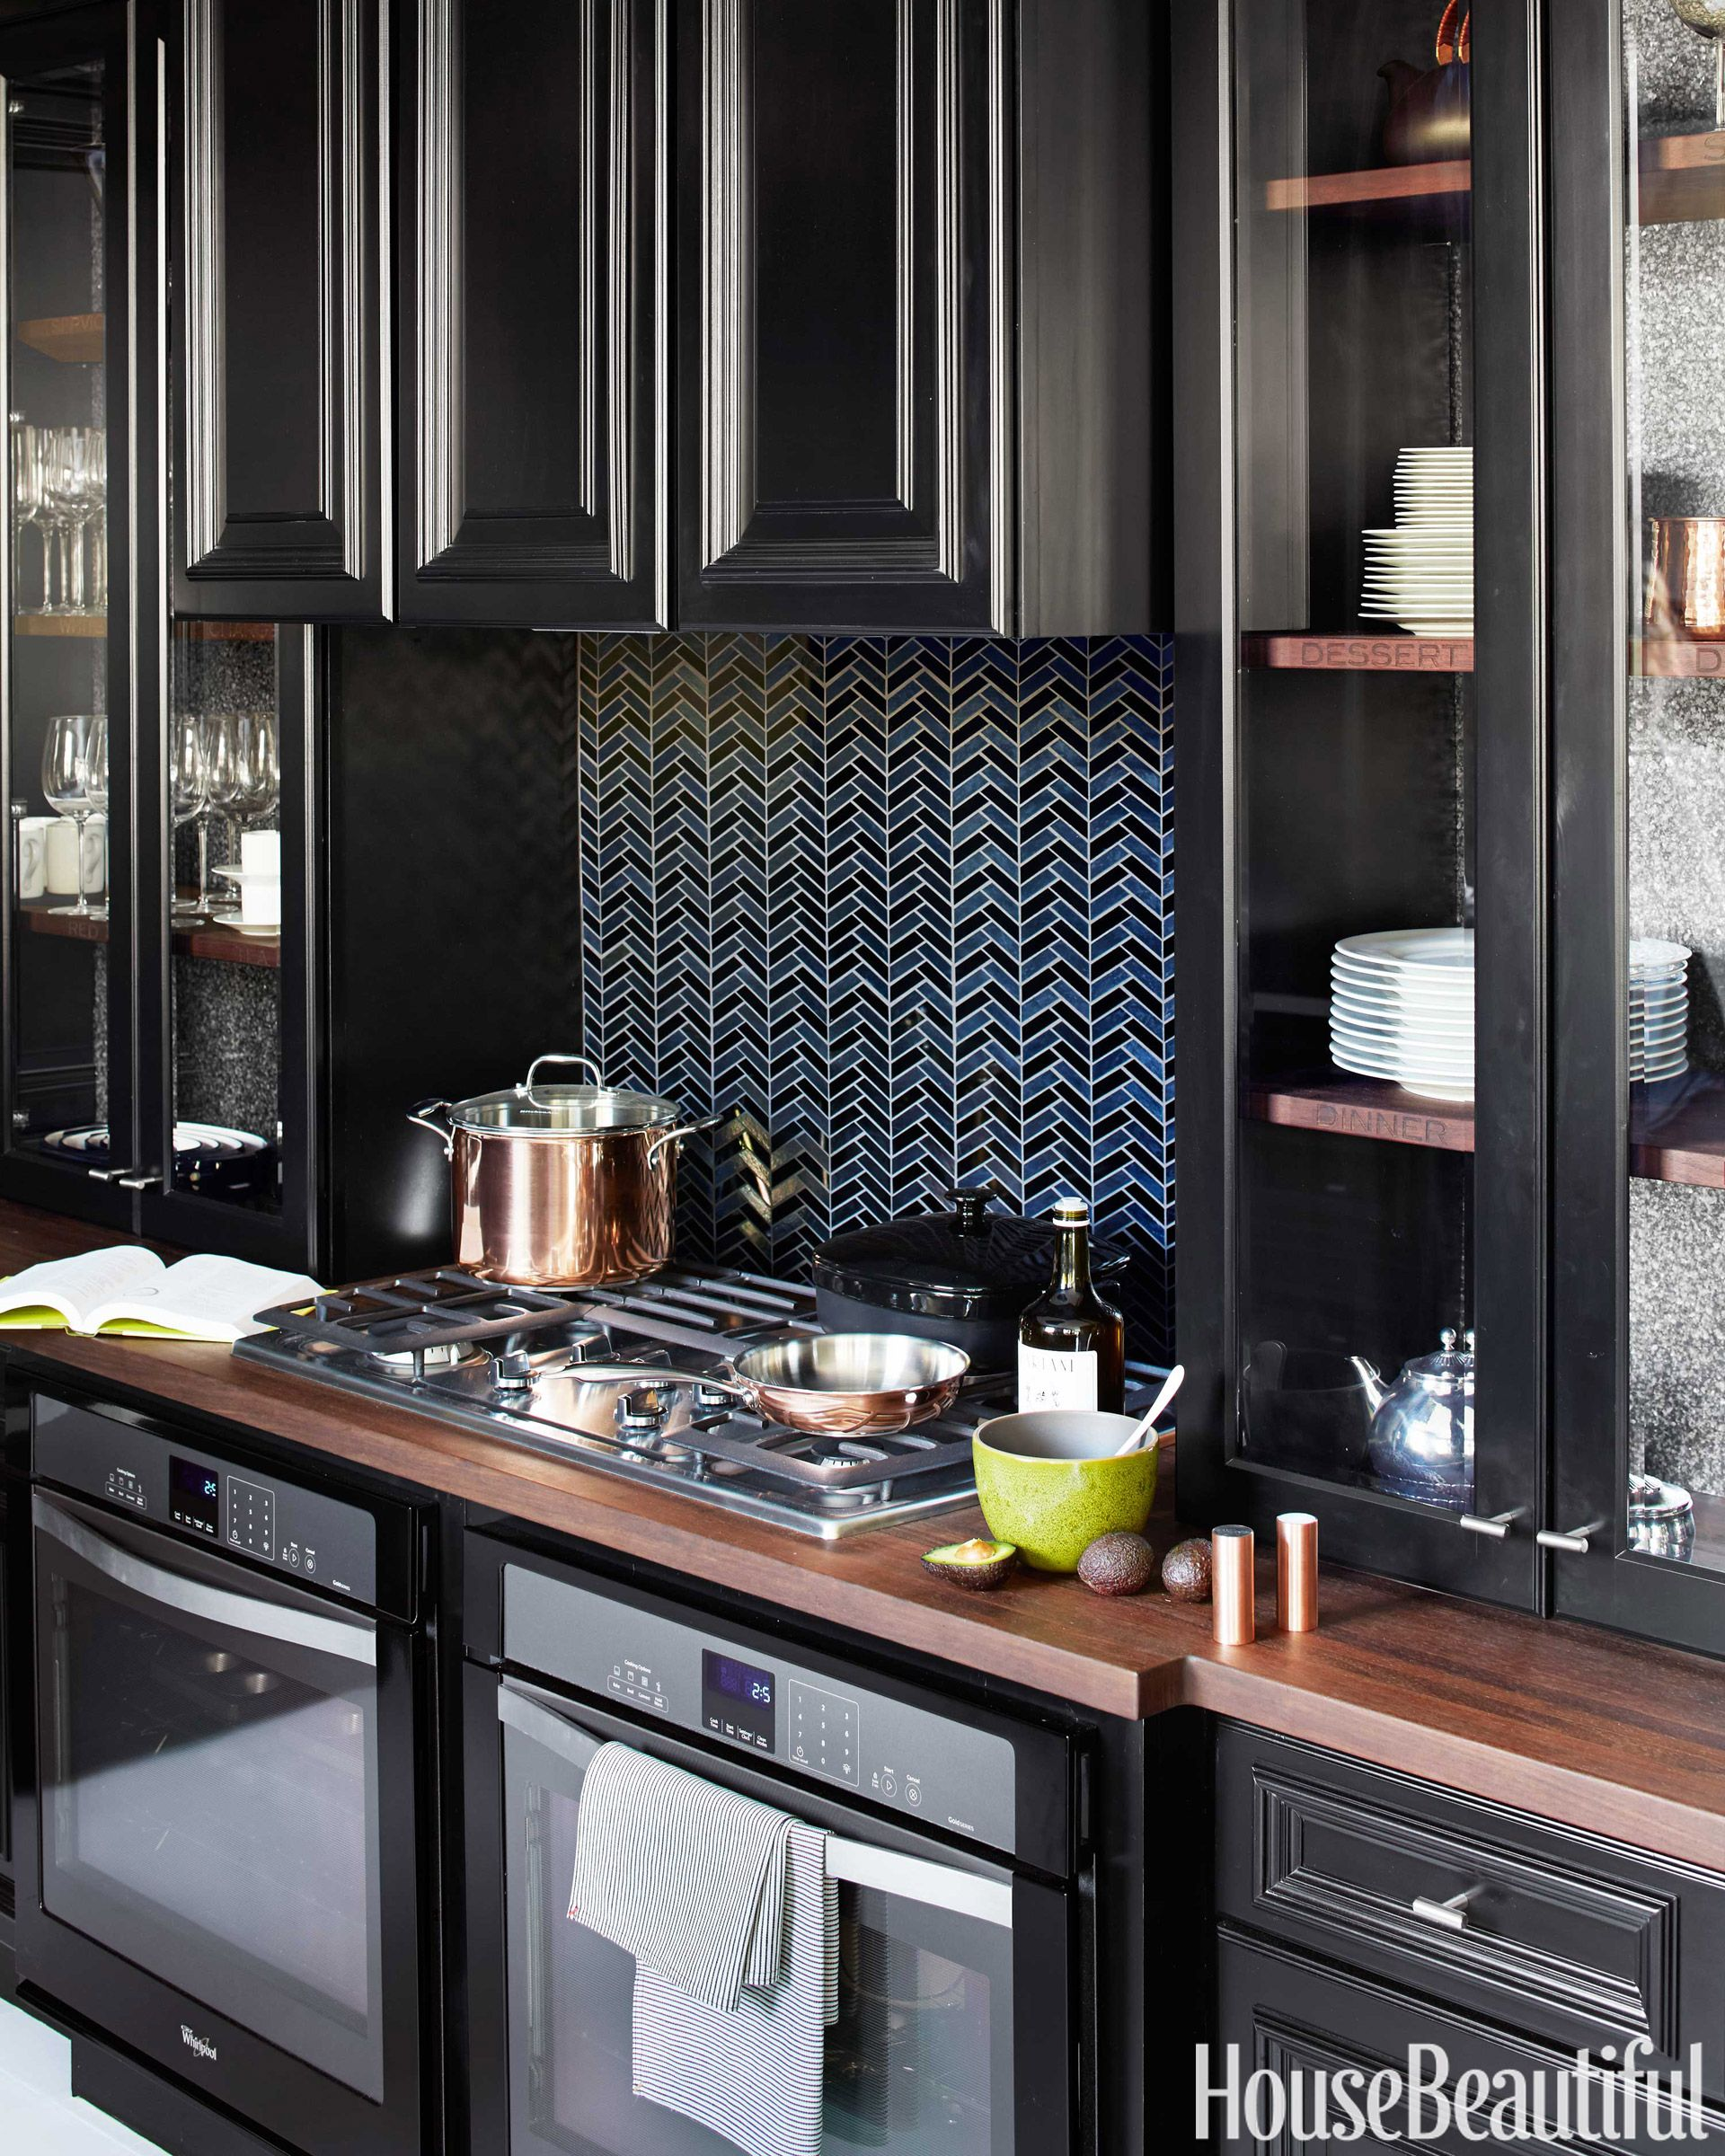 whirlpool gold gas cooktop & 10 Black Kitchen Cabinet Ideas - Black Cabinetry and Cupboards